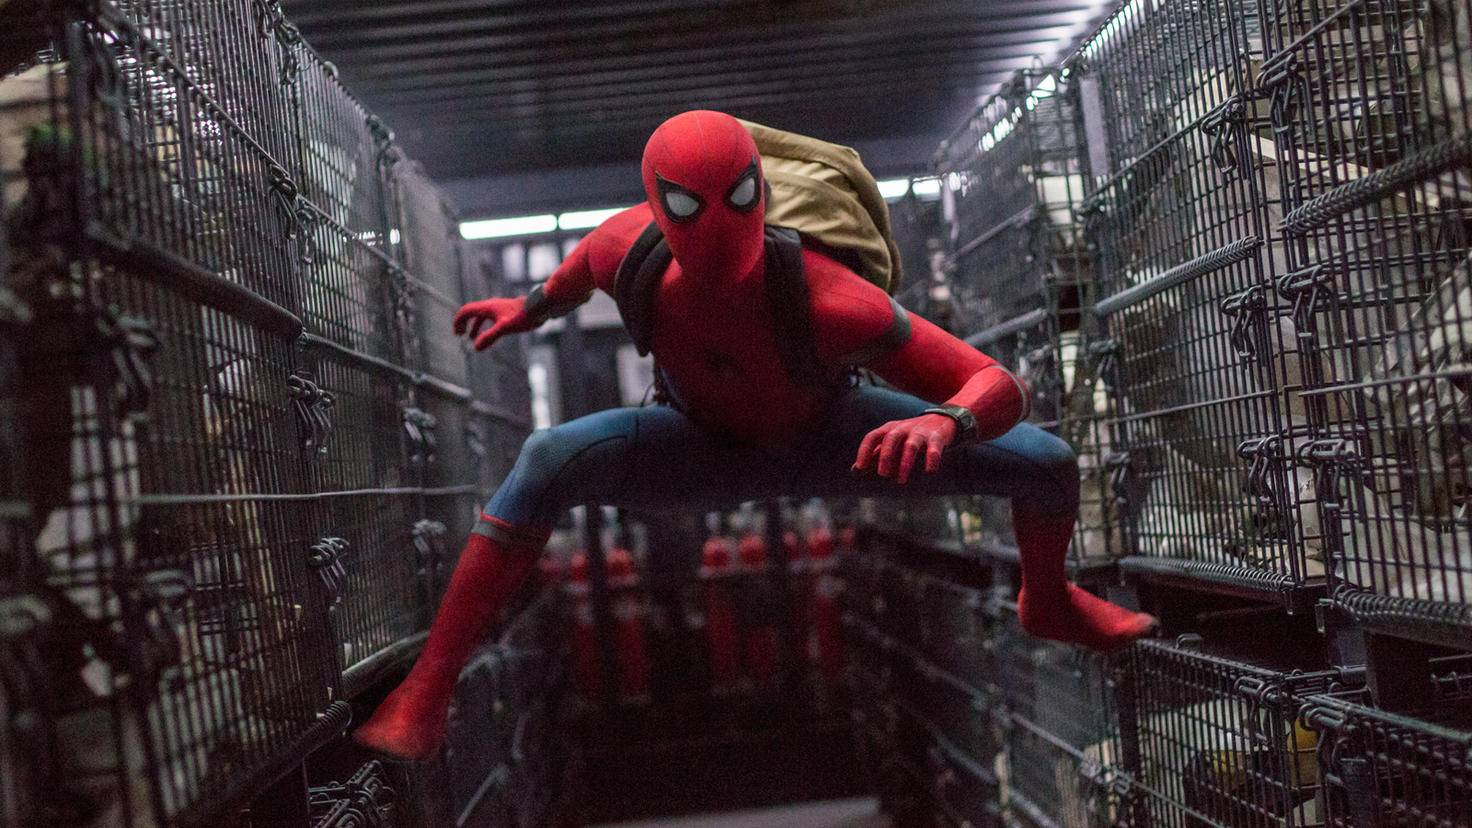 Spider-Man Sony Pictures Releasing GmbH 2